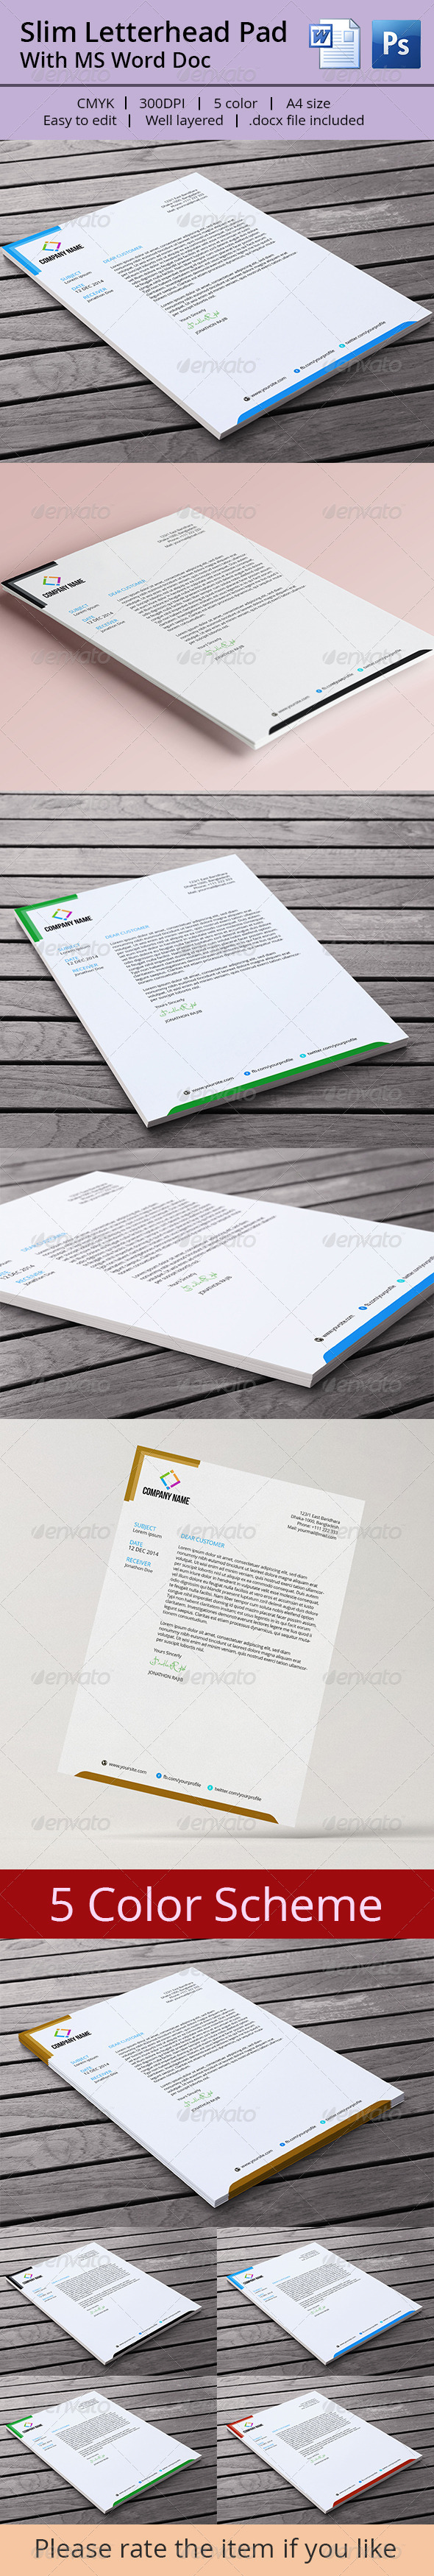 GraphicRiver Slim Letterhead Pad With MS Word Doc 7365403